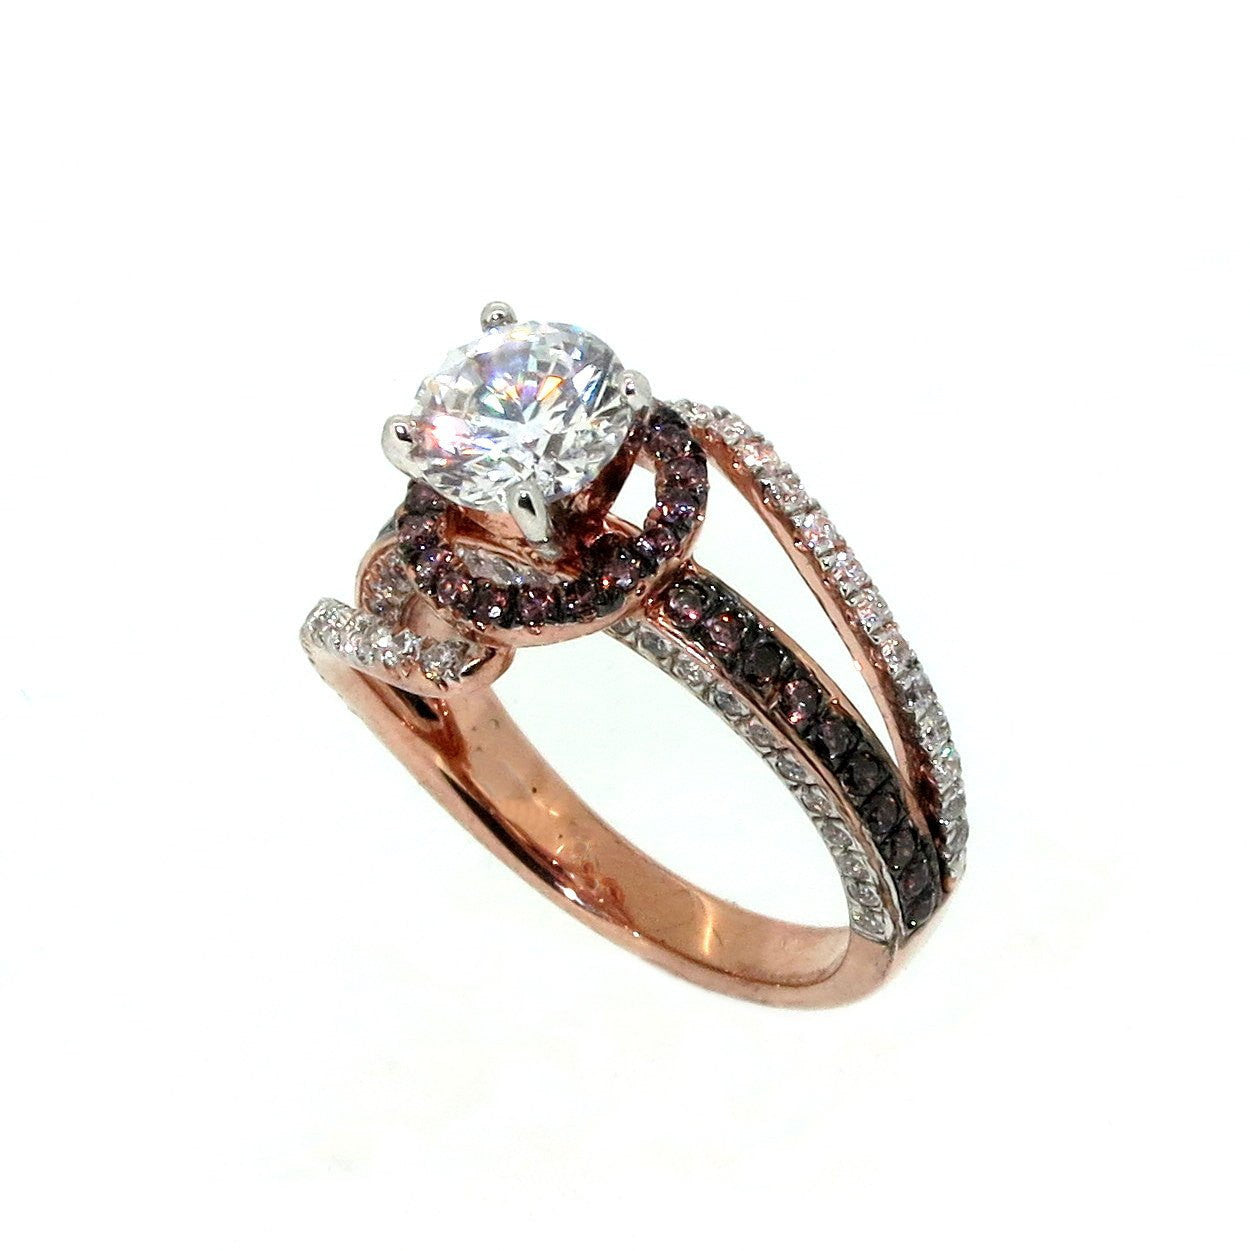 Unique Floating Halo Rose Gold Diamond, 1 Carat Forever Brilliant Moissanite, Brown Diamonds Engagement Ring, Anniversary - FB94619